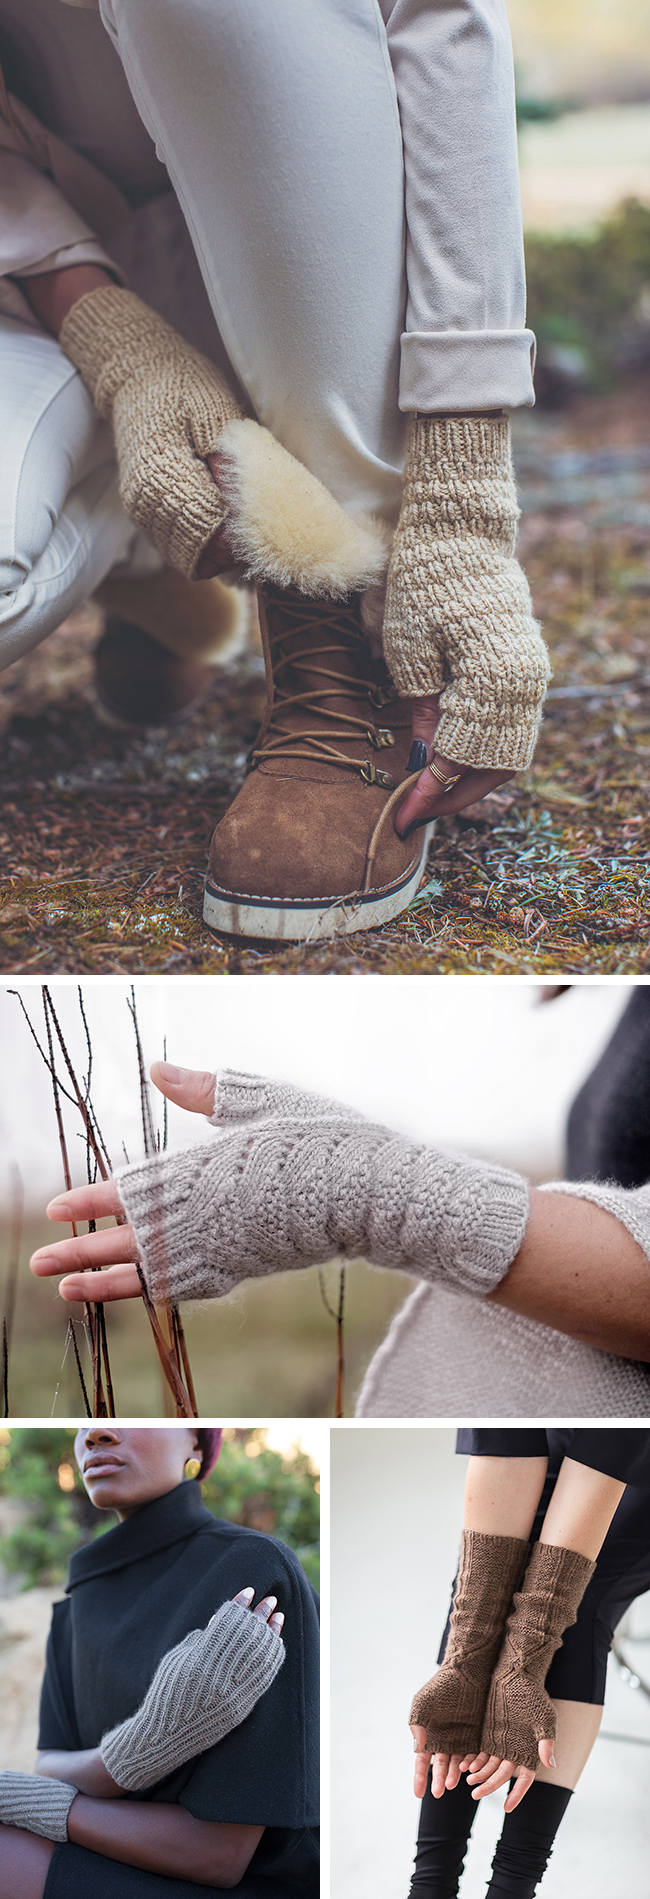 New Favorites: Textured mitts